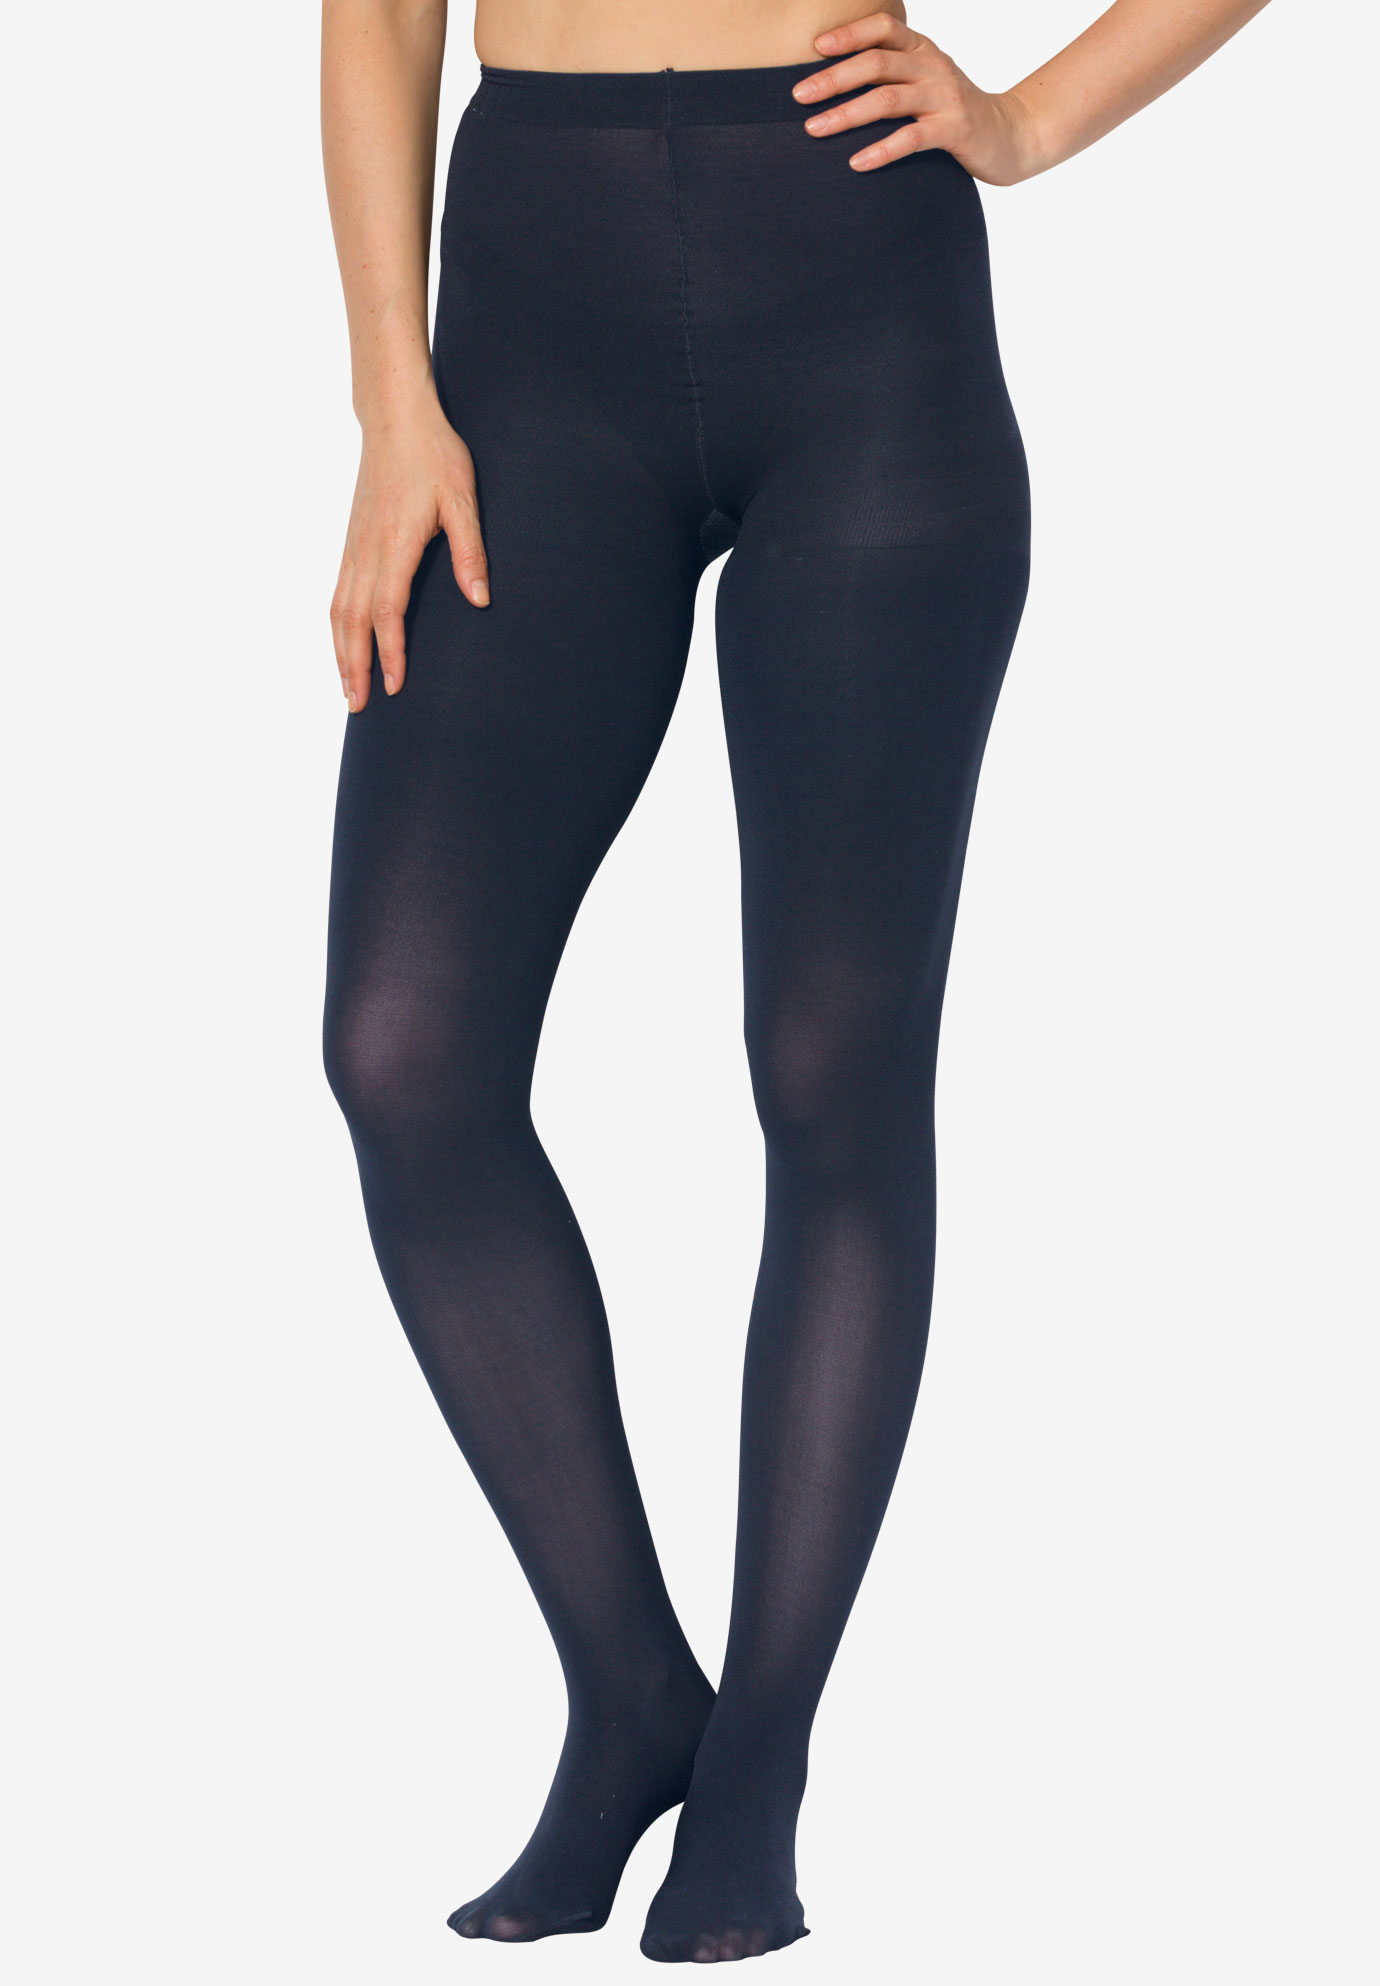 37e1003877128 Shaping tights by Secret Solutions® Curvewear